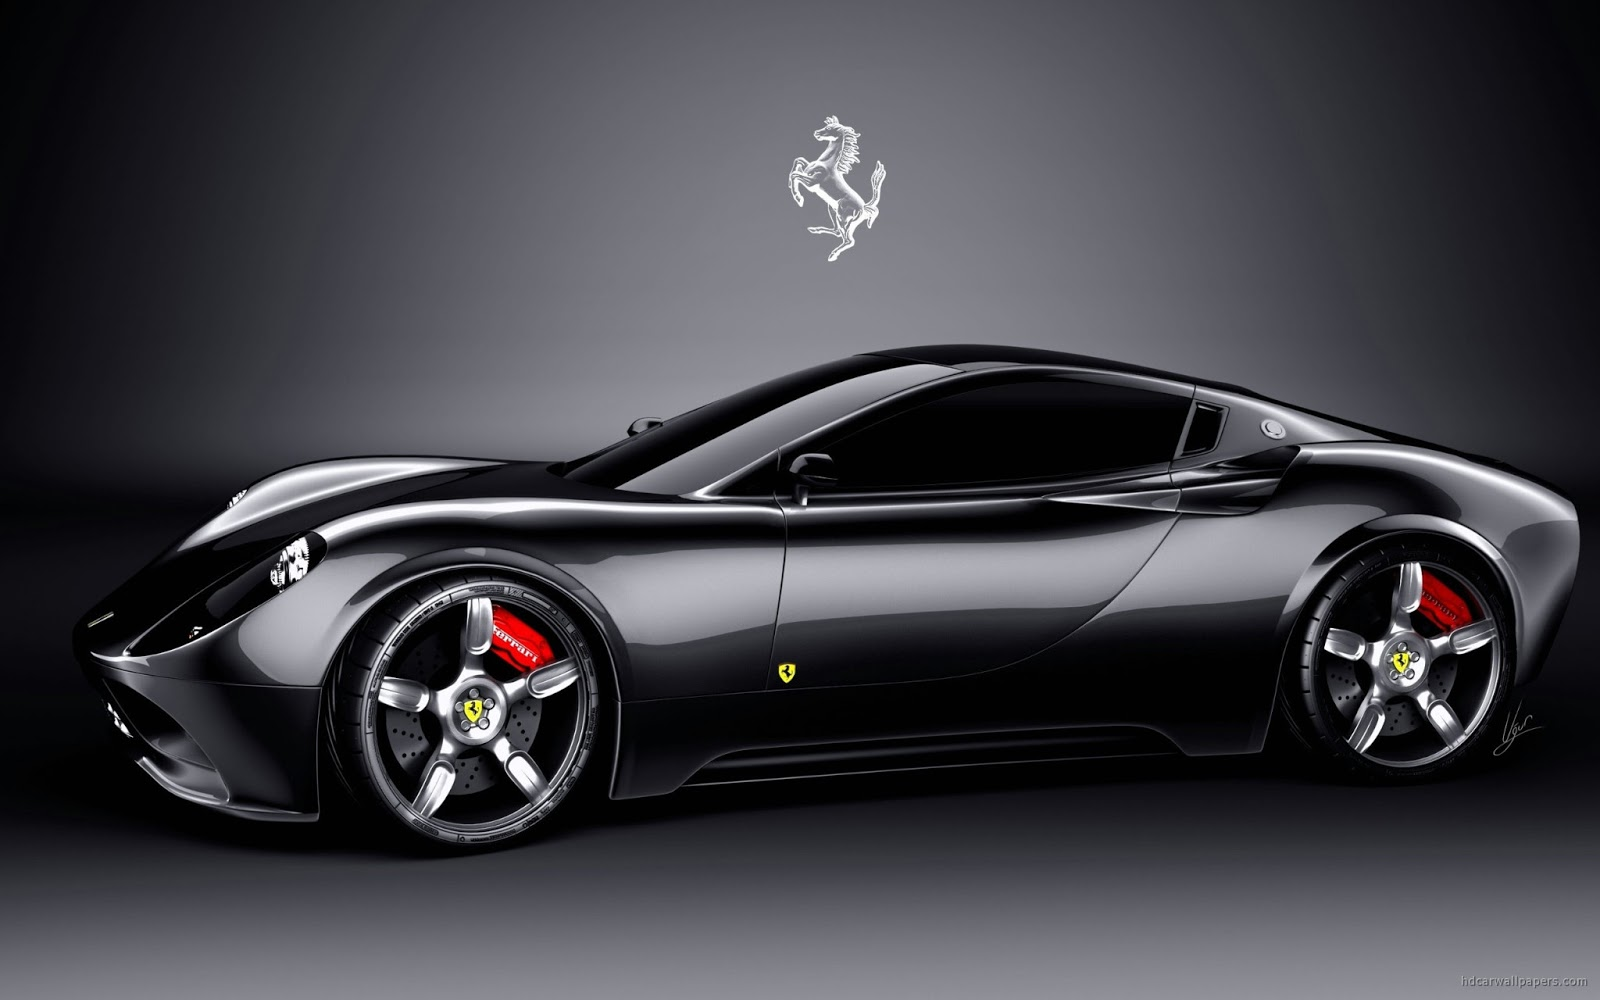 black+ferrari+hd+wallpapers+2013.jpg